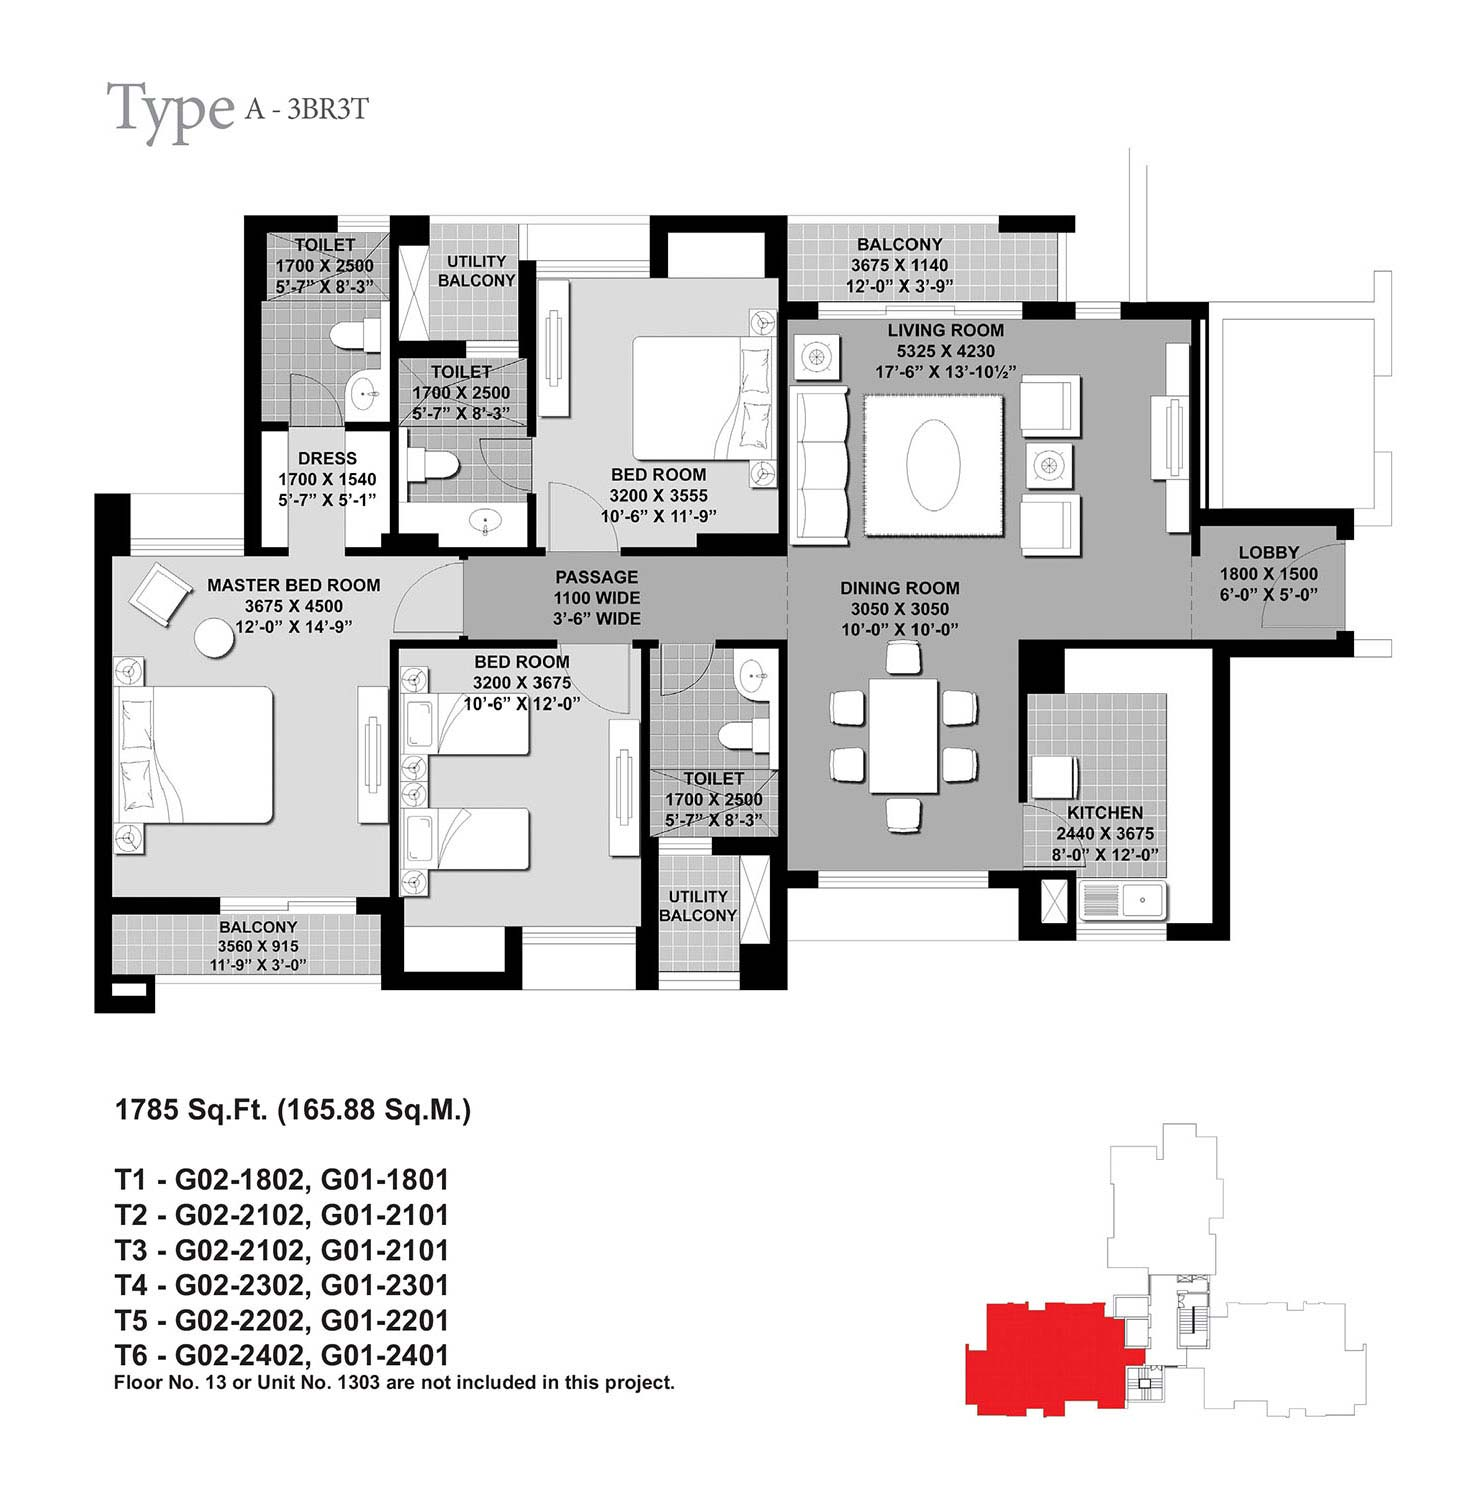 Floor Plan-3BR3T-1785 Sq.Ft.